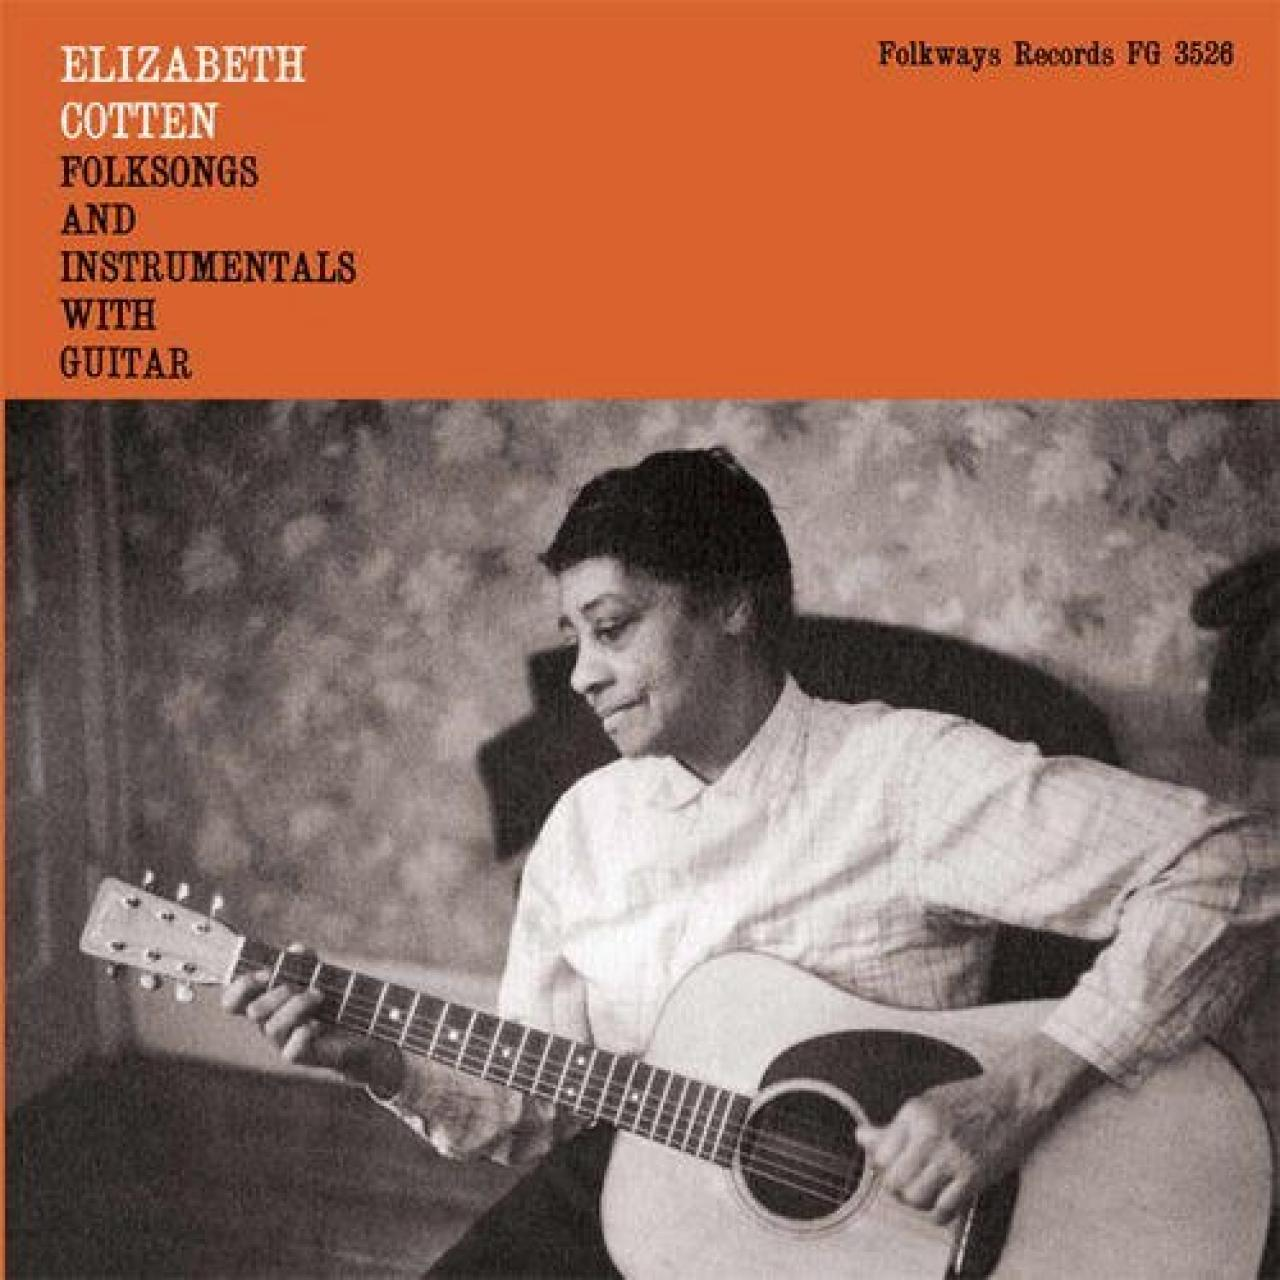 Elizabeth Cotten – Folksongs and Instrumentals with Guitar